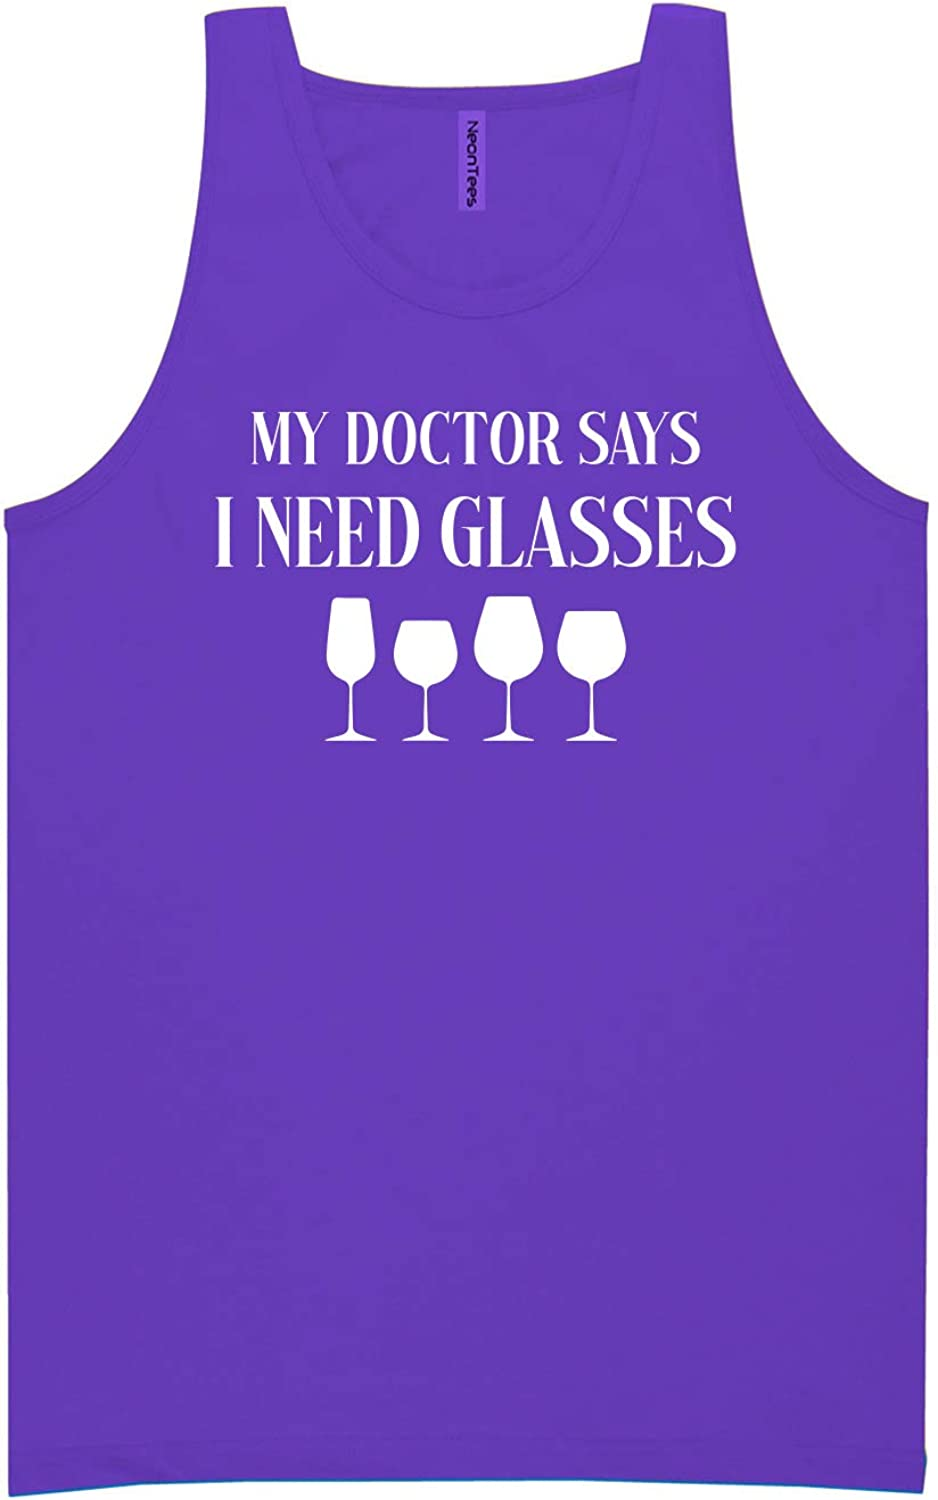 My Doctor Says I Need Glasses Neon Tank Top